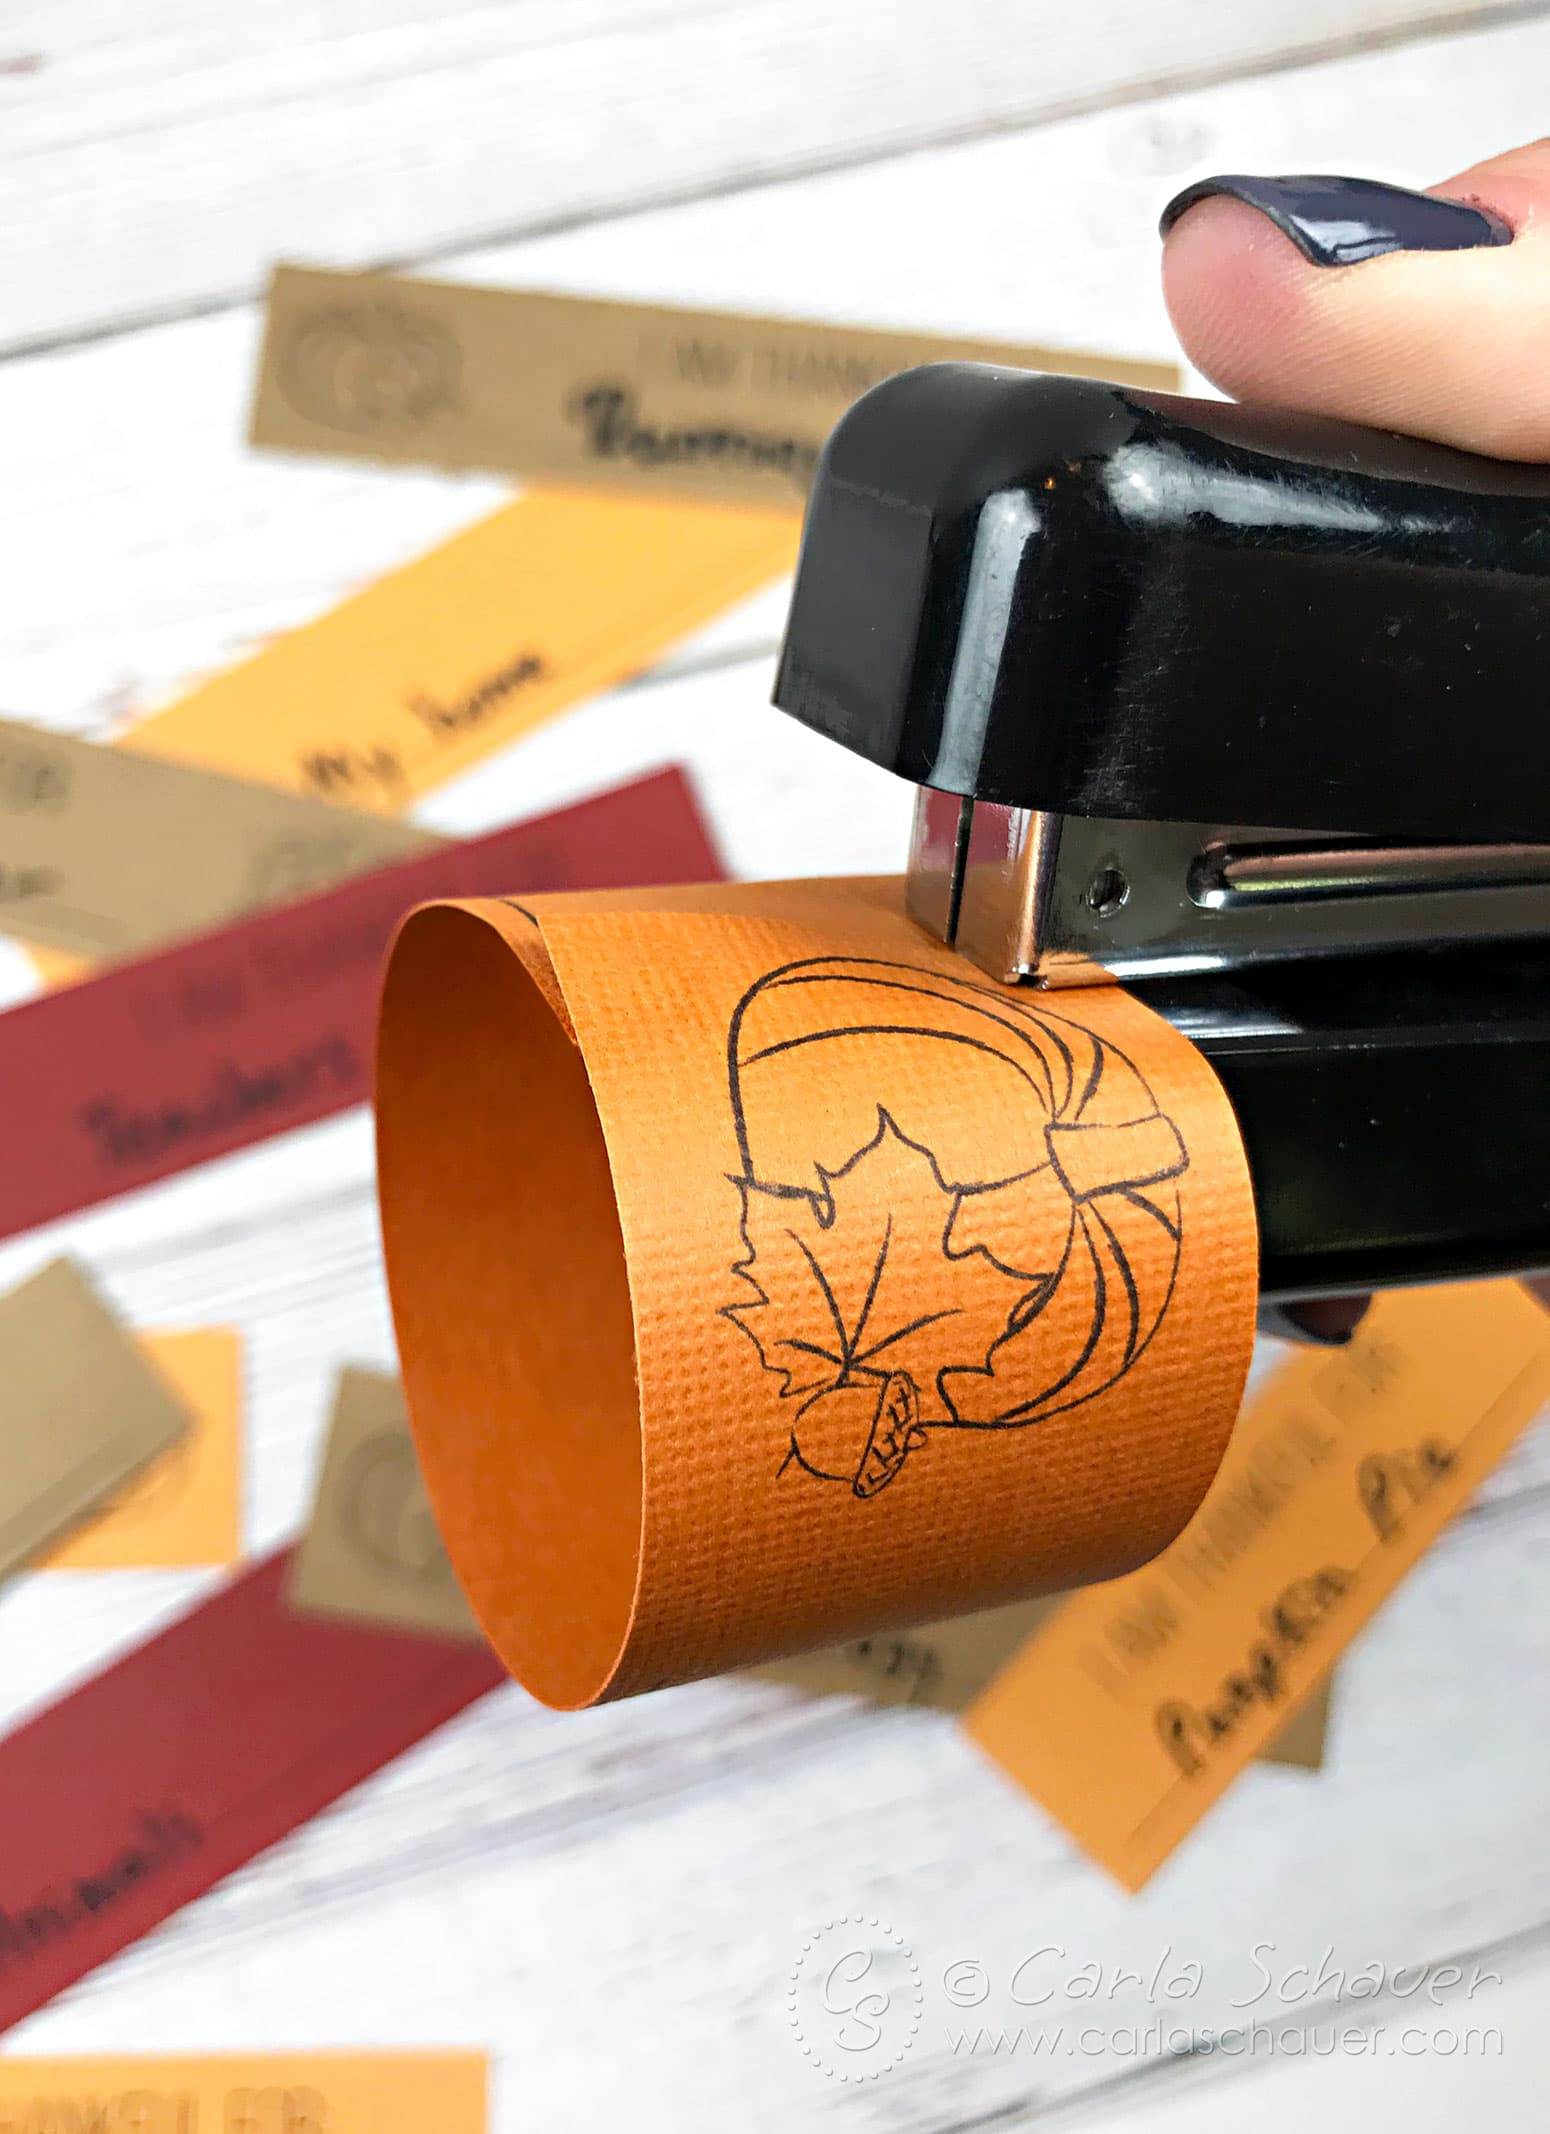 Stapler attaching paper gratitude strip ends to make a circle link.